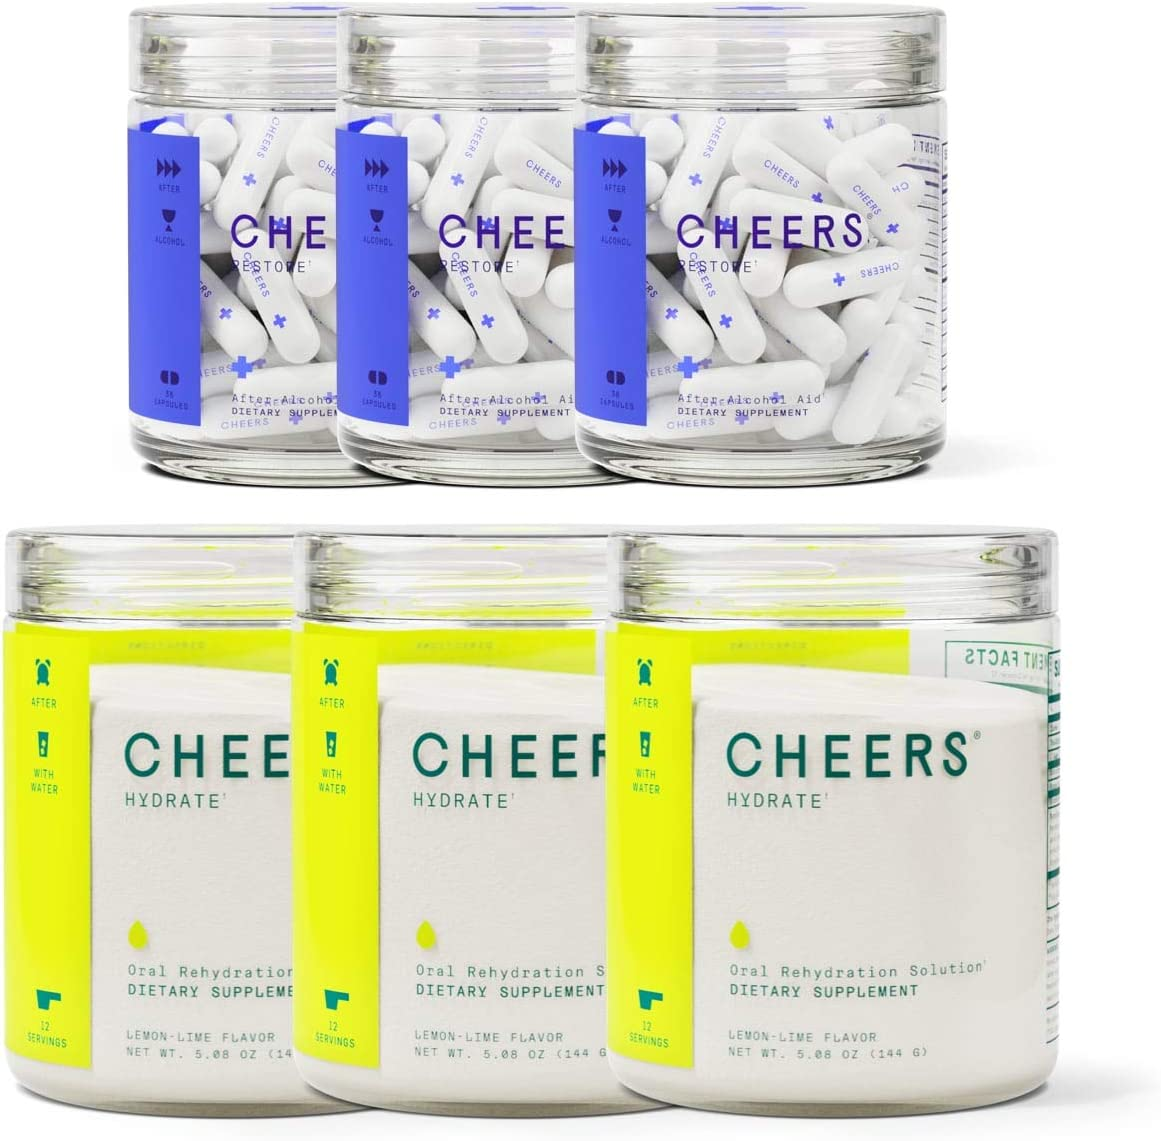 Cheers Classic Combo Kansas City Mall Popular products Restore Feel Great Hydrate Rehydrat